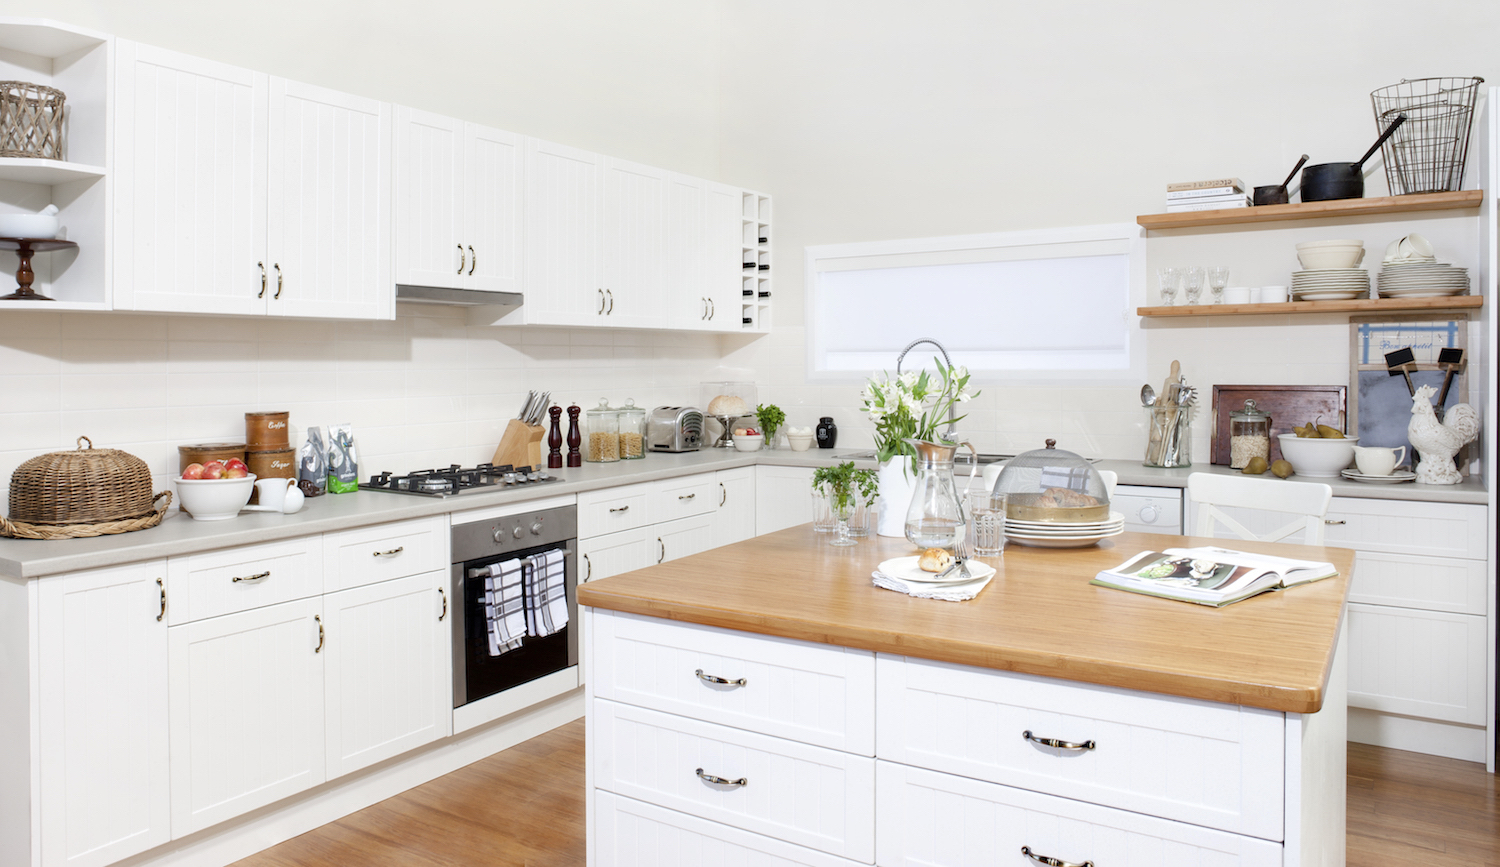 Fullsize Of Country Kitchen Designs Photo Gallery